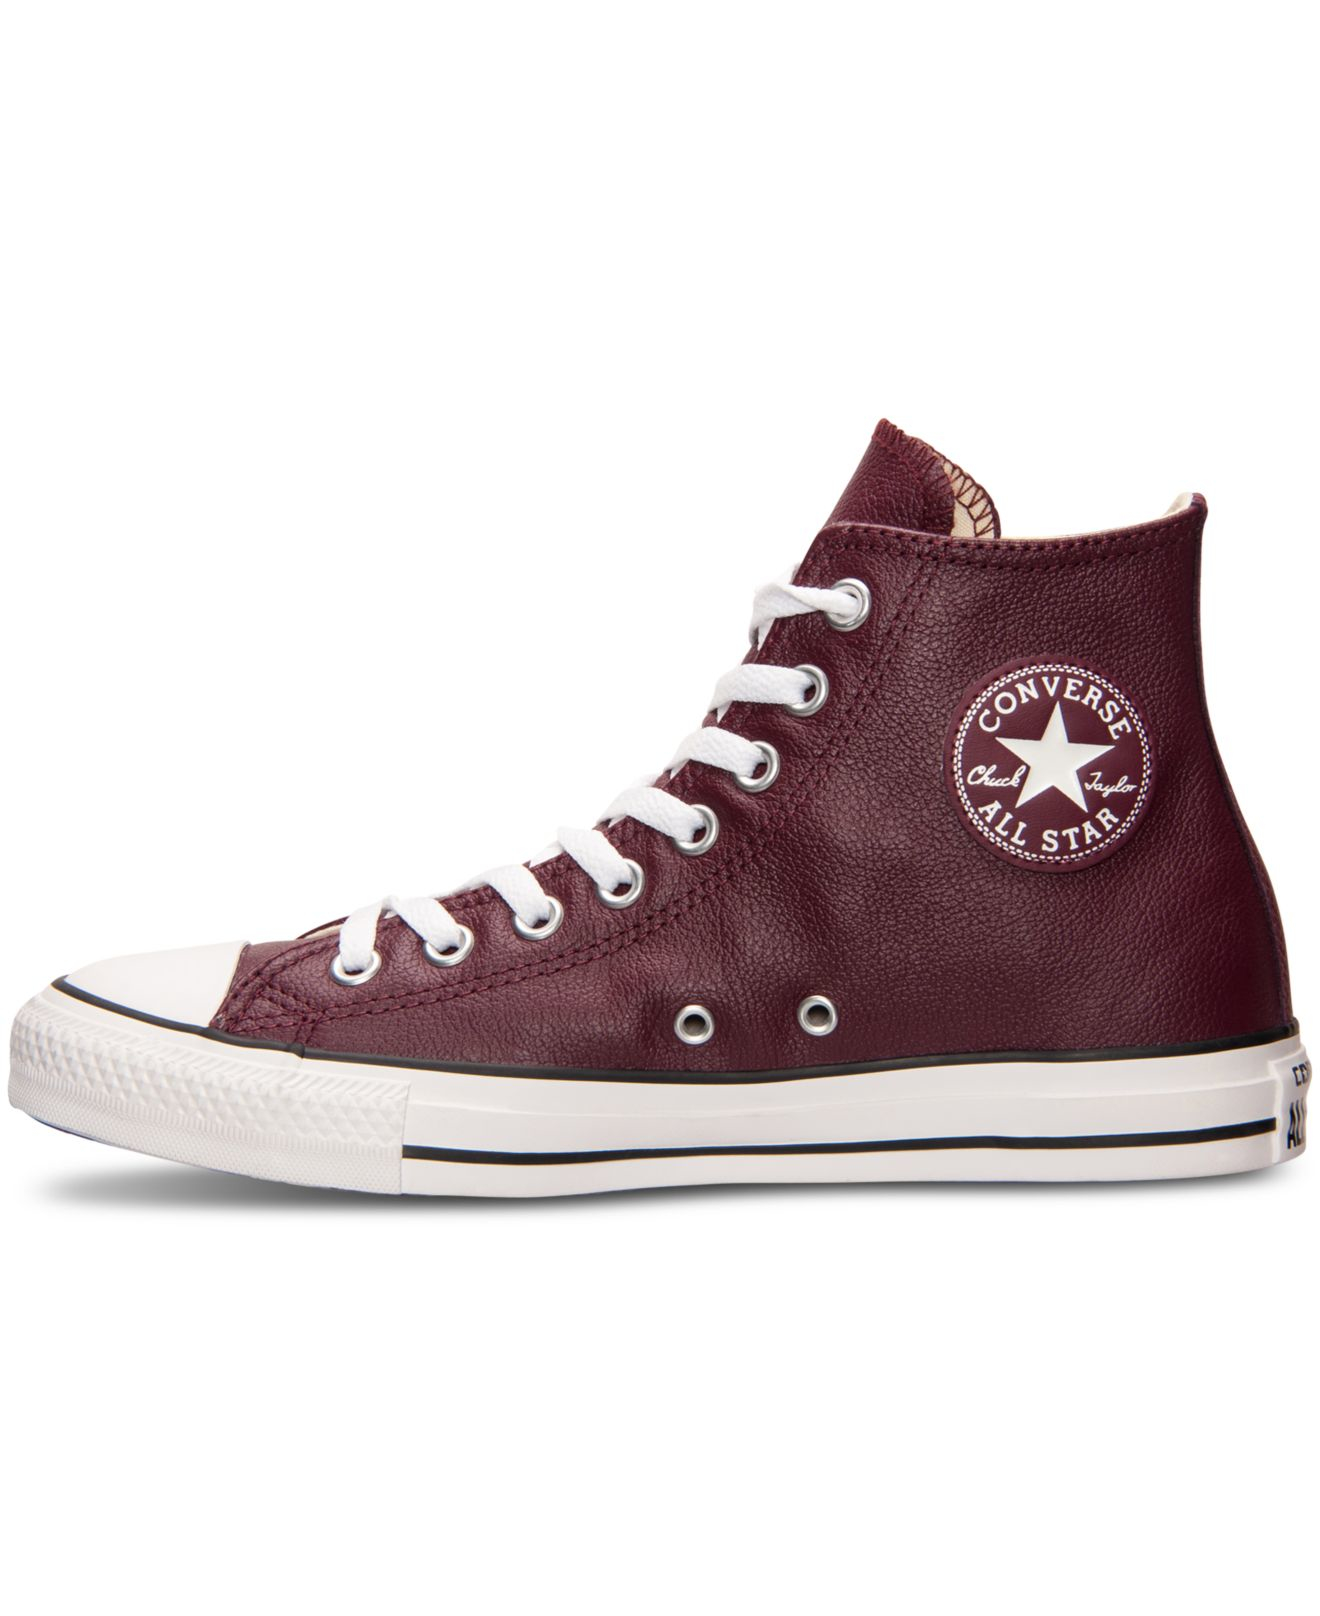 how to clean leather converse shoes